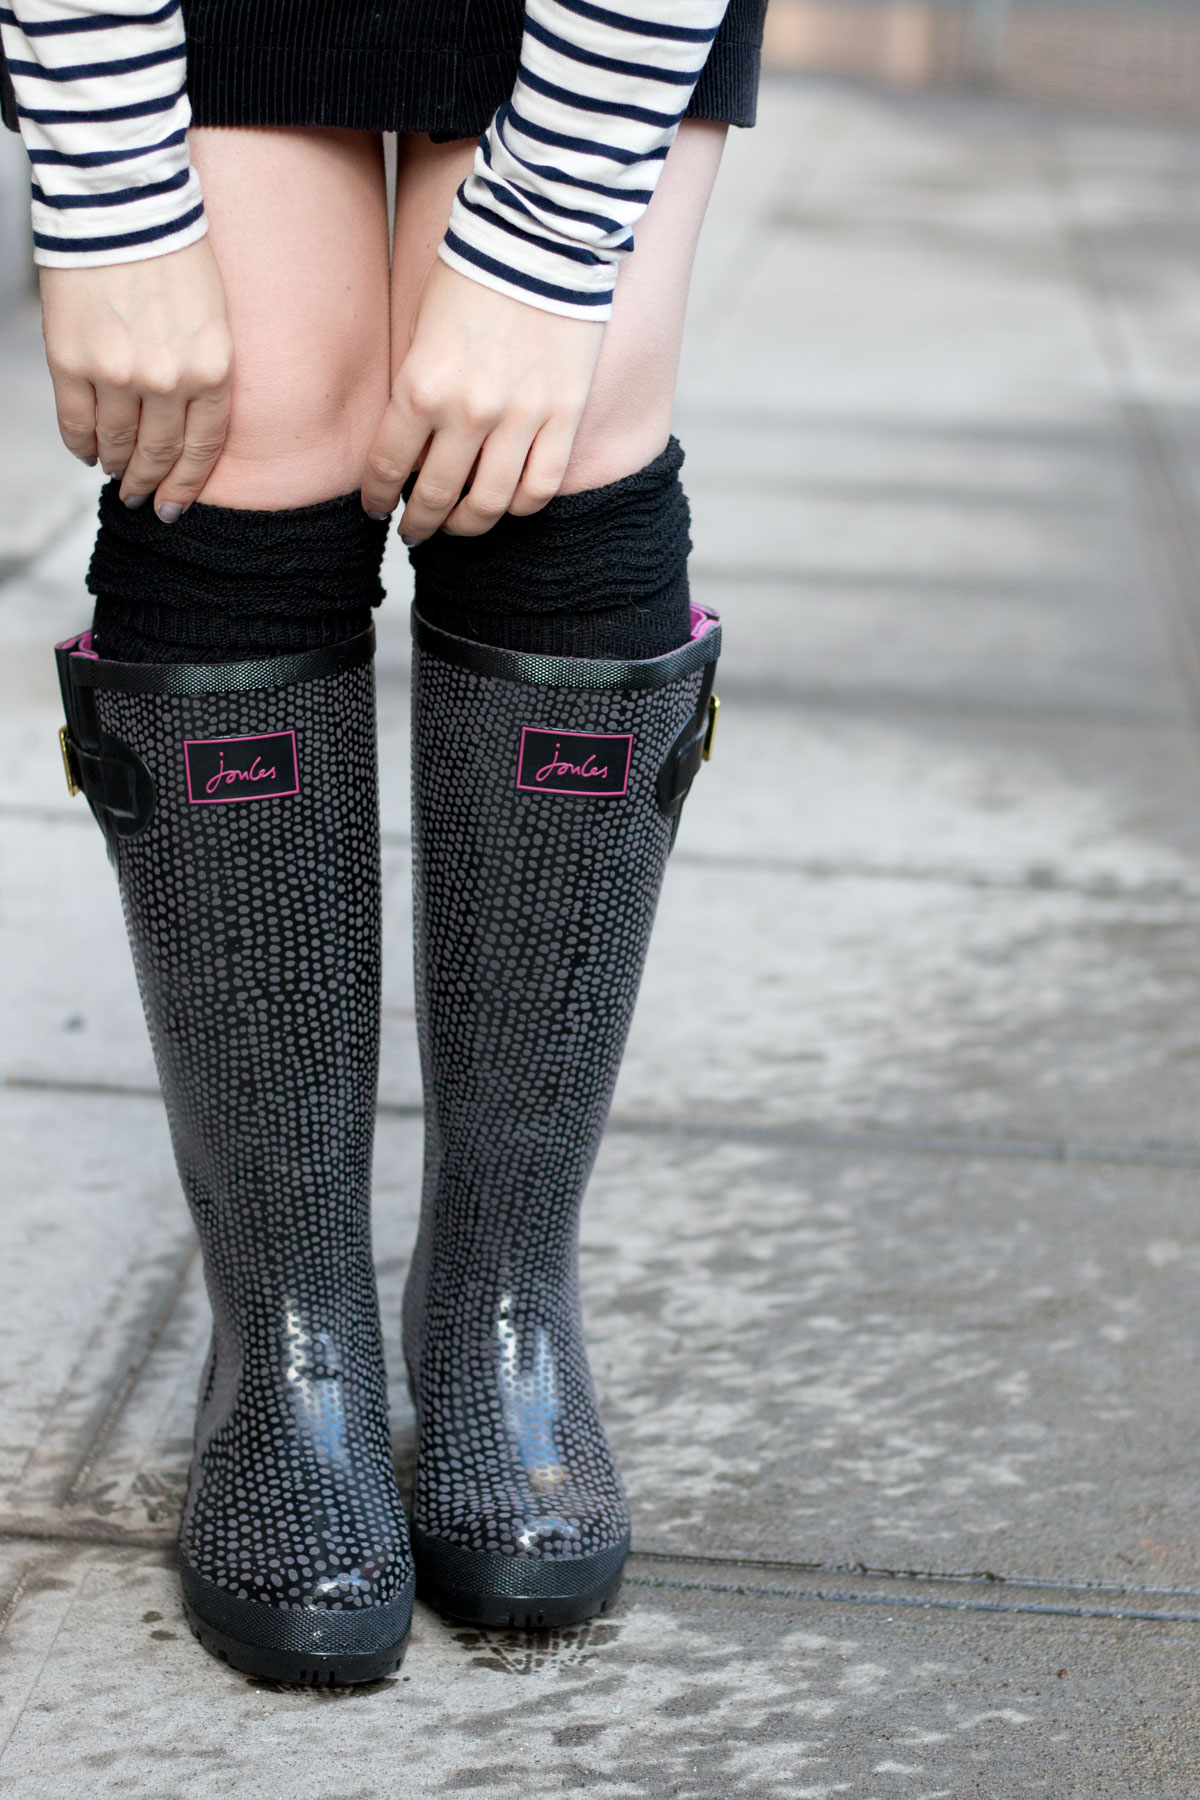 Joules Wellies London Rain Boots Outfit // hellorigby.com seattle fashion blog